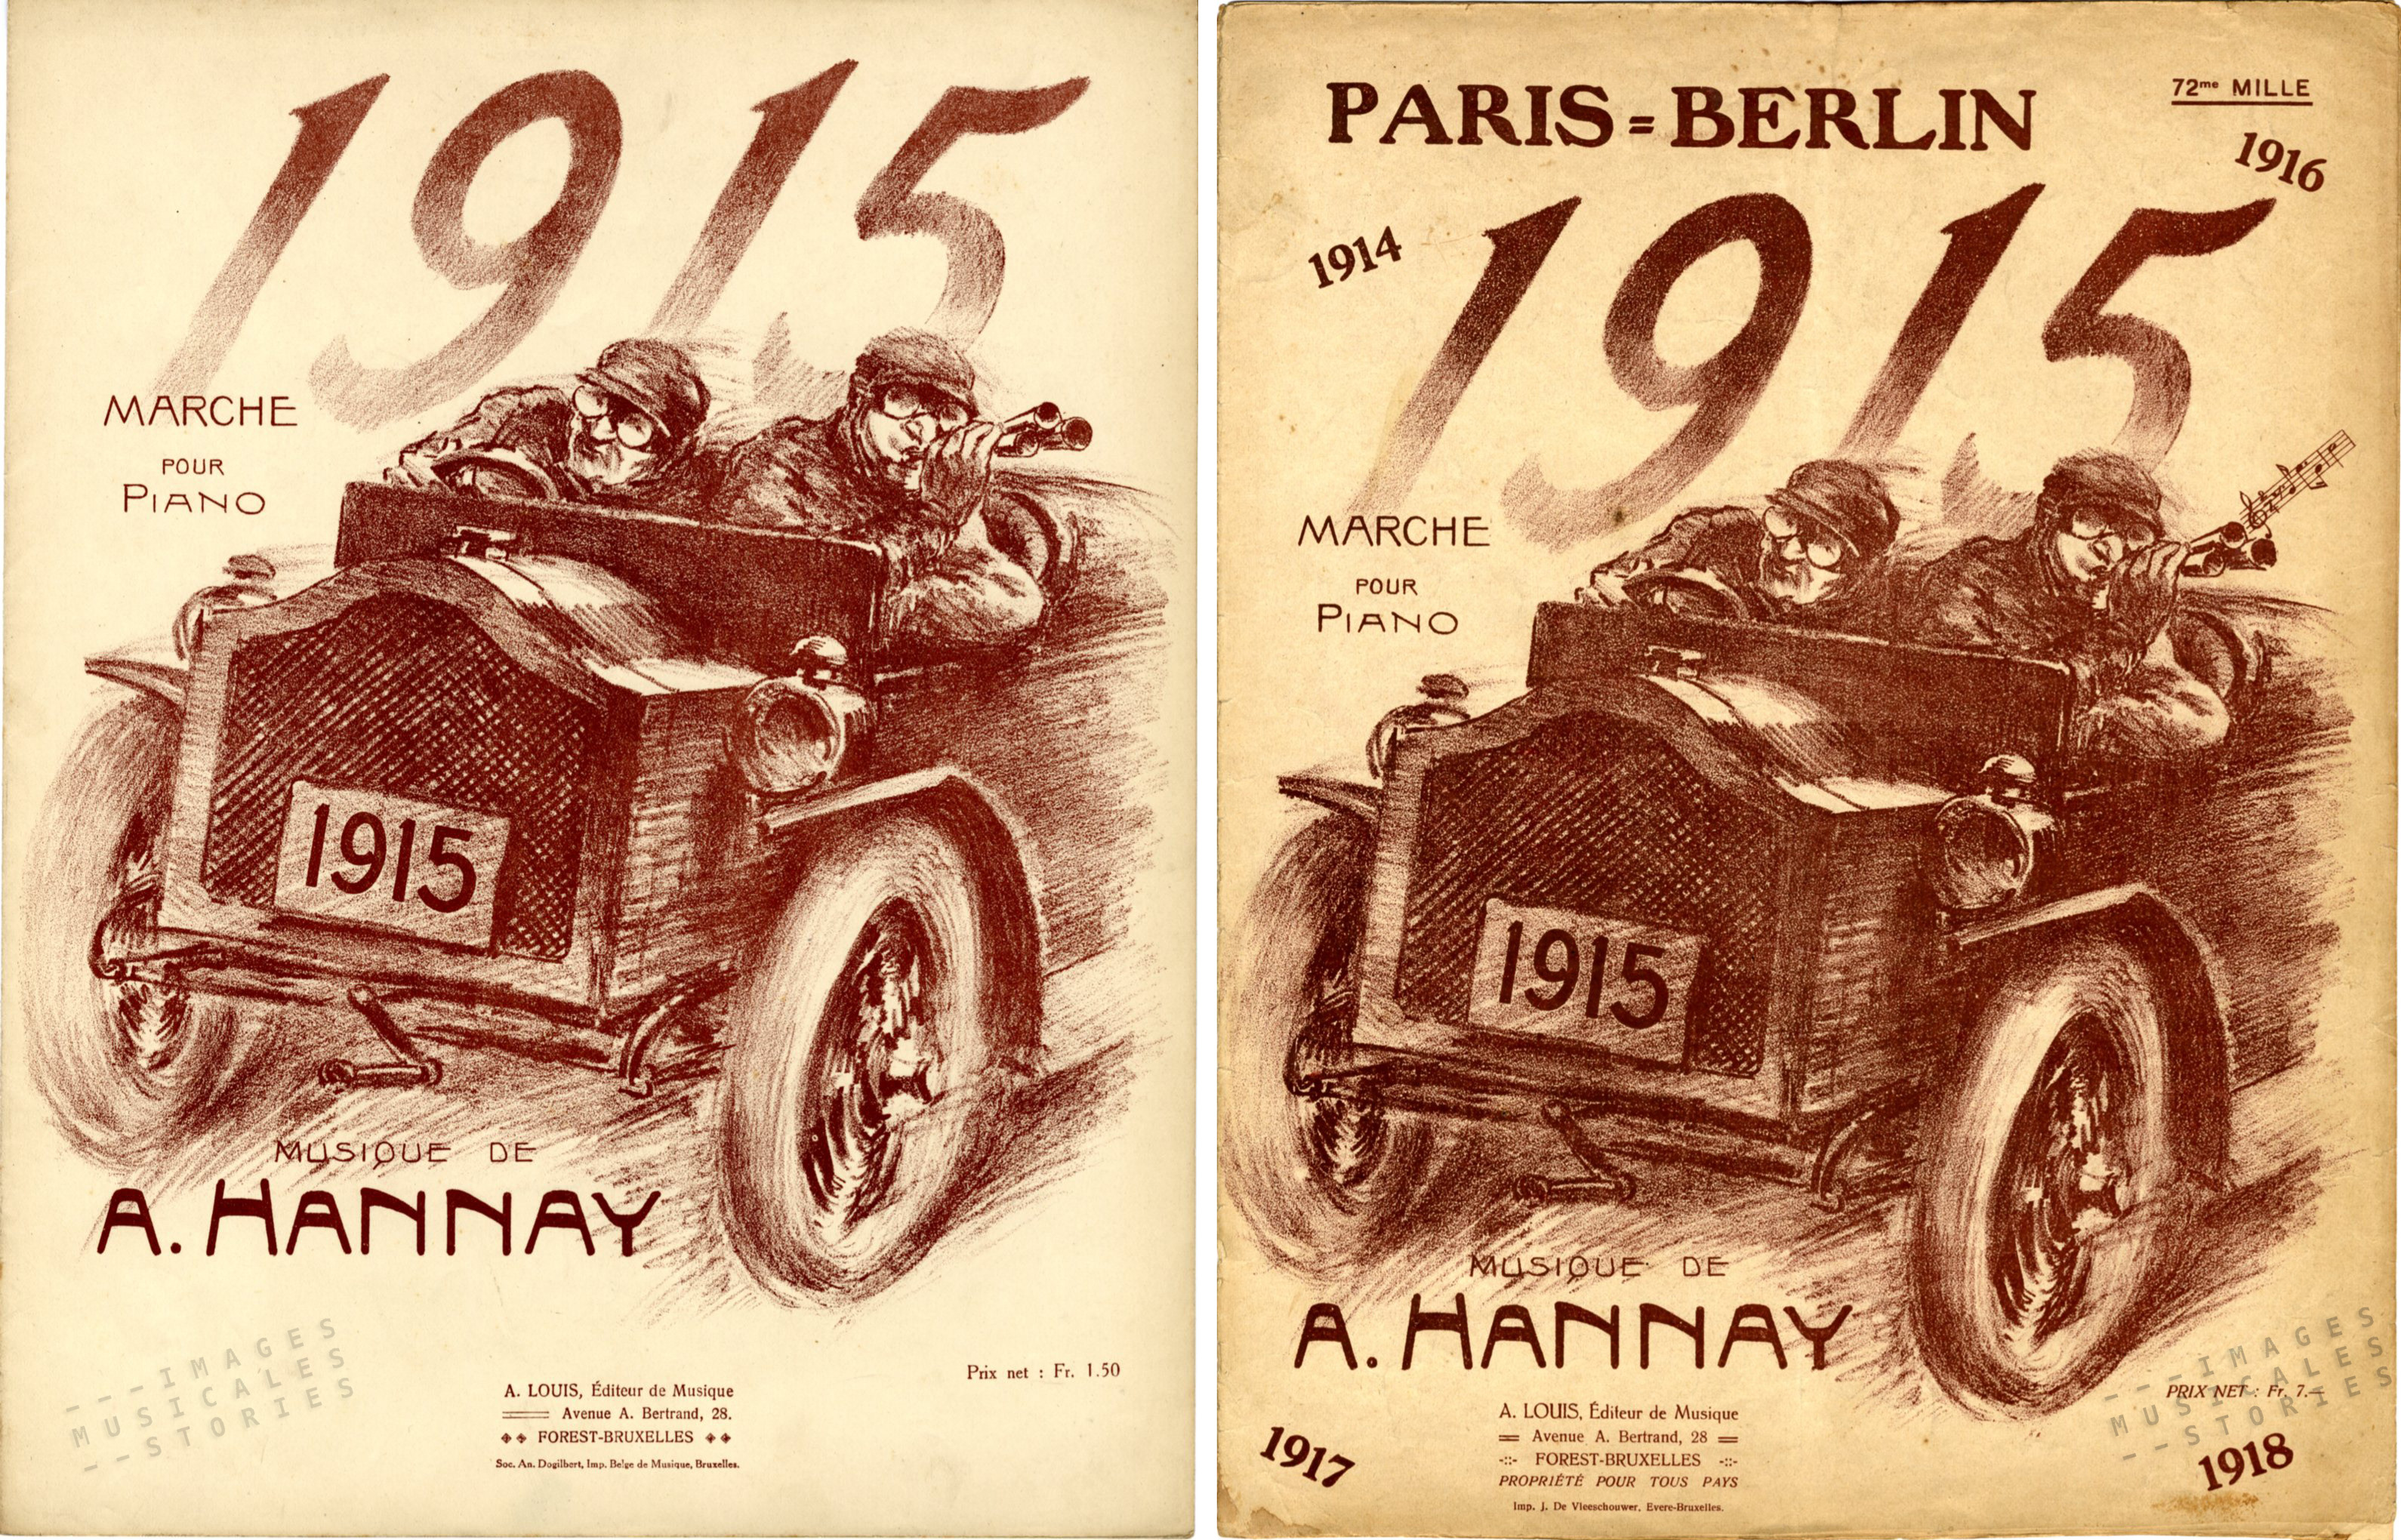 'Paris-Berlin, 1915' sheet music, march by A. Hannay (partition illustrée)